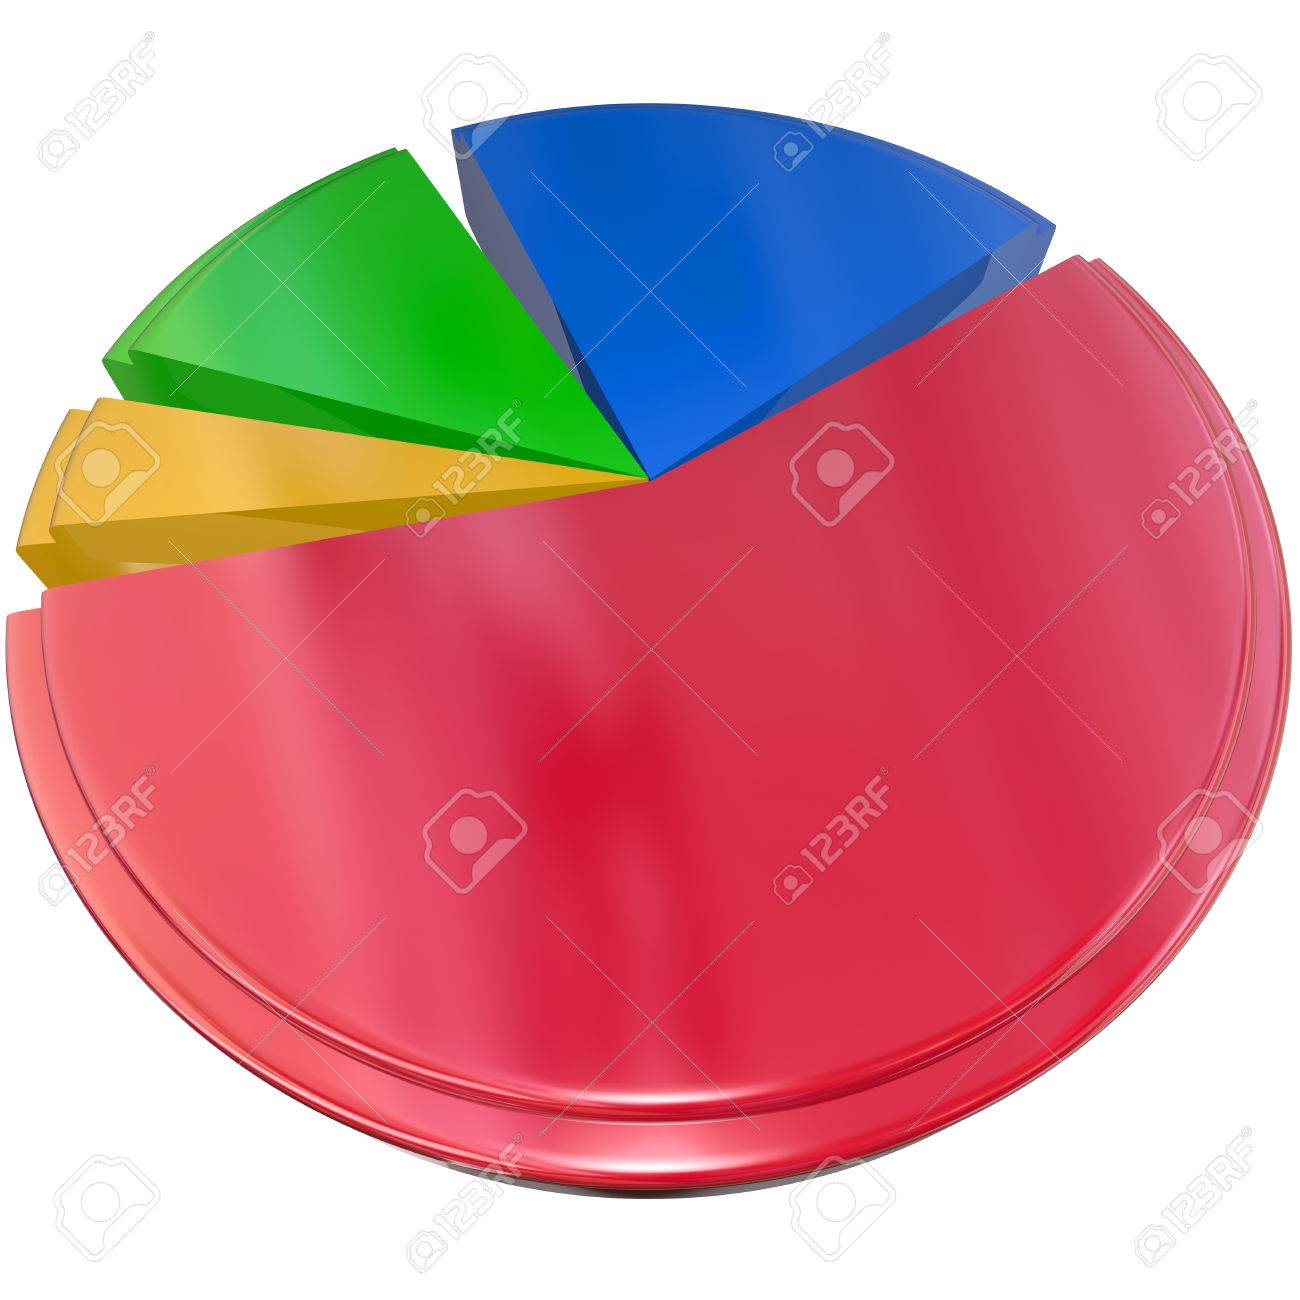 3d Isolated Pie Chart To Illustrate Results Data And Answers